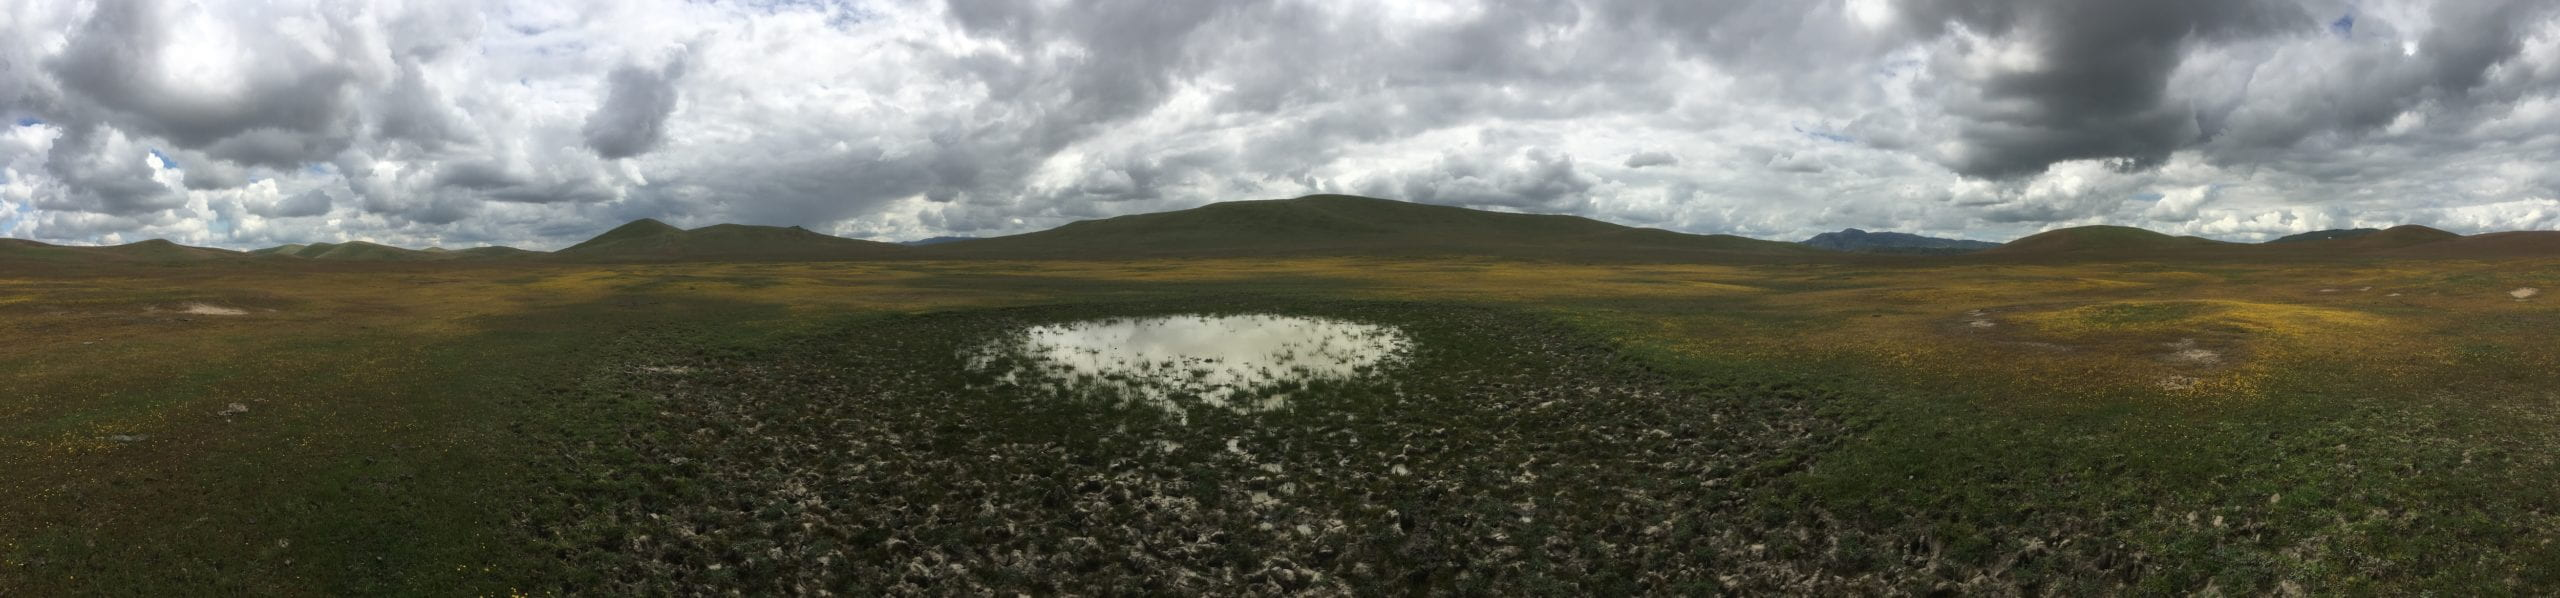 Vernal pool where amphibians breed and flowers bloom